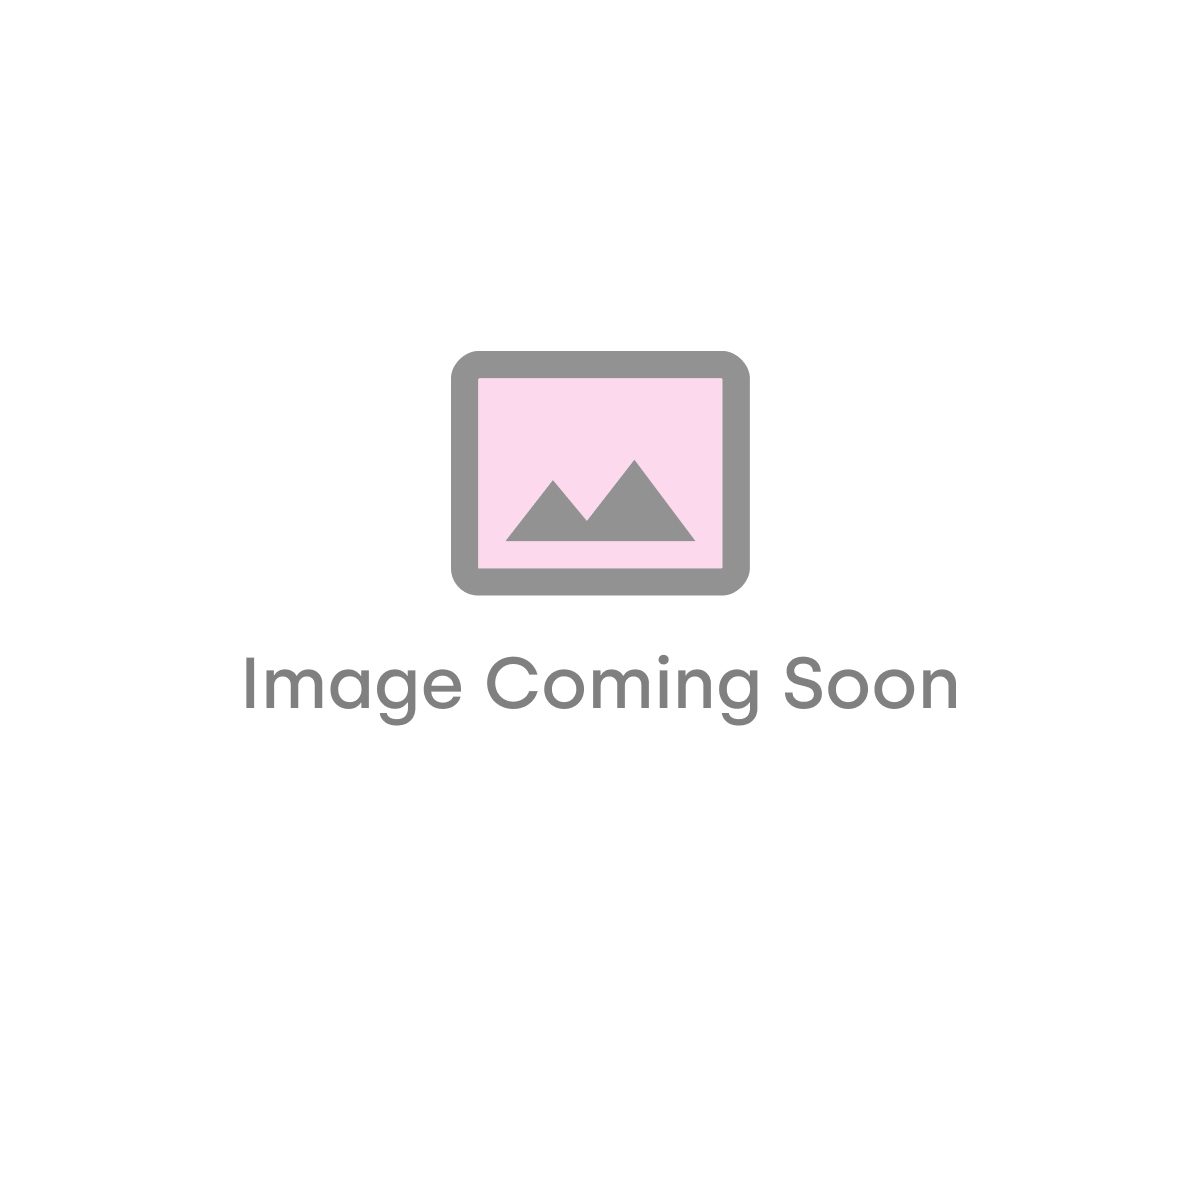 Eliseo Ricci Instant Boiling Water Kitchen Tap - Brushed Gold - 14477